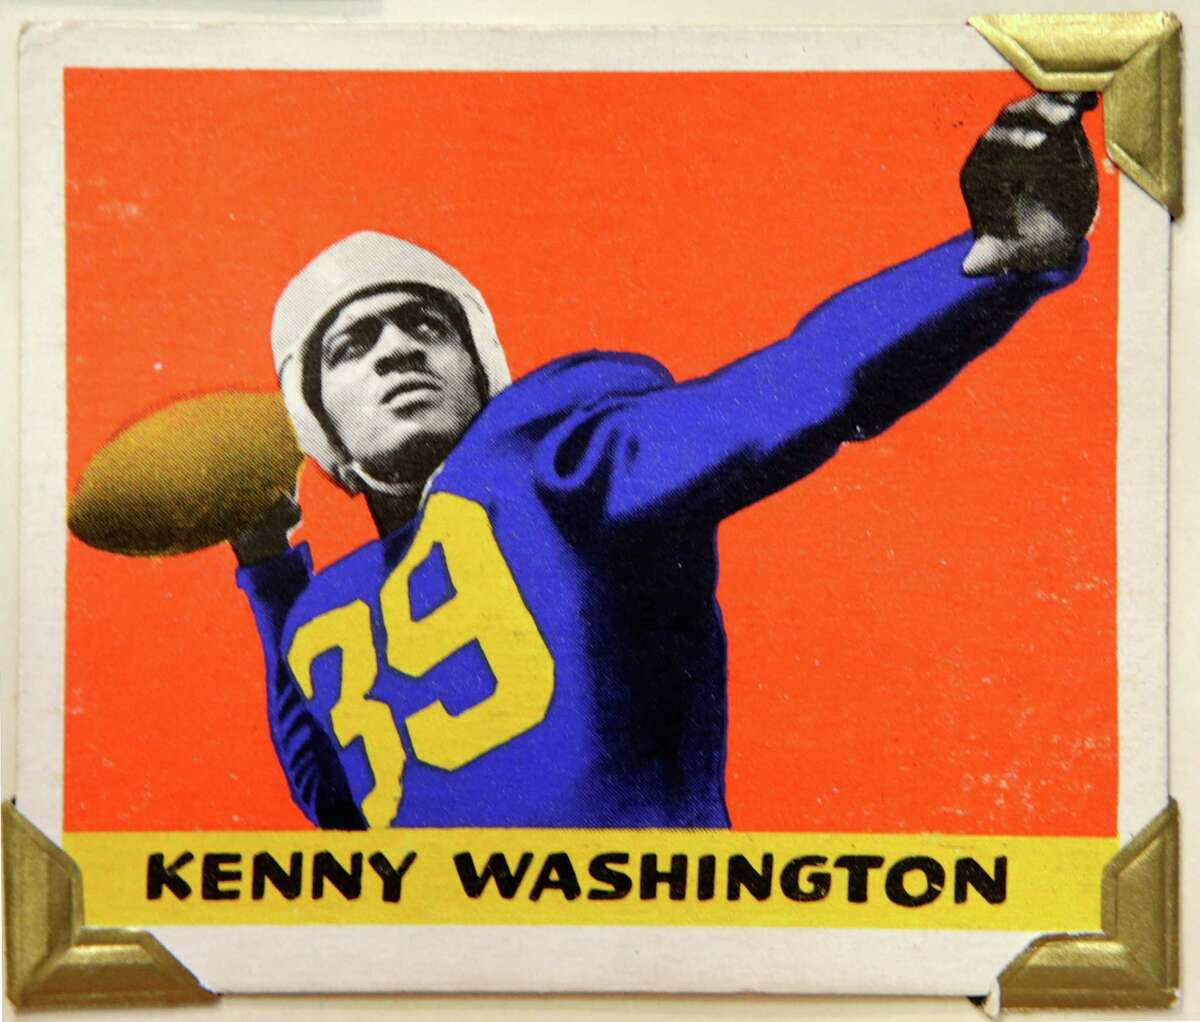 UCLA tailback and Los Angeles Rams running back Kenny Washington is shown in this 1948 Leaf Gum Company football trading card, shown Wednesday, Jan. 8, 2014, at the Metropolitan Museum of Art in New York. Washington played alongside Jackie Robinson at UCLA and in 1946 became one of the first black players in the NFL after a 12-year ban. The Met is presenting a pop-up exhibition celebrating football's history through the ages with vintage trading cards. The 150 cards, including a series from 1894, are part of approximately 600 football cards from the museum's vast collection of sport trade cards donated to the Met by the late hobby pioneer Jefferson Burdick. The exhibit runs Jan. 24 through Feb. 10. (AP Photo/Kathy Willens) ORG XMIT: NYKW107